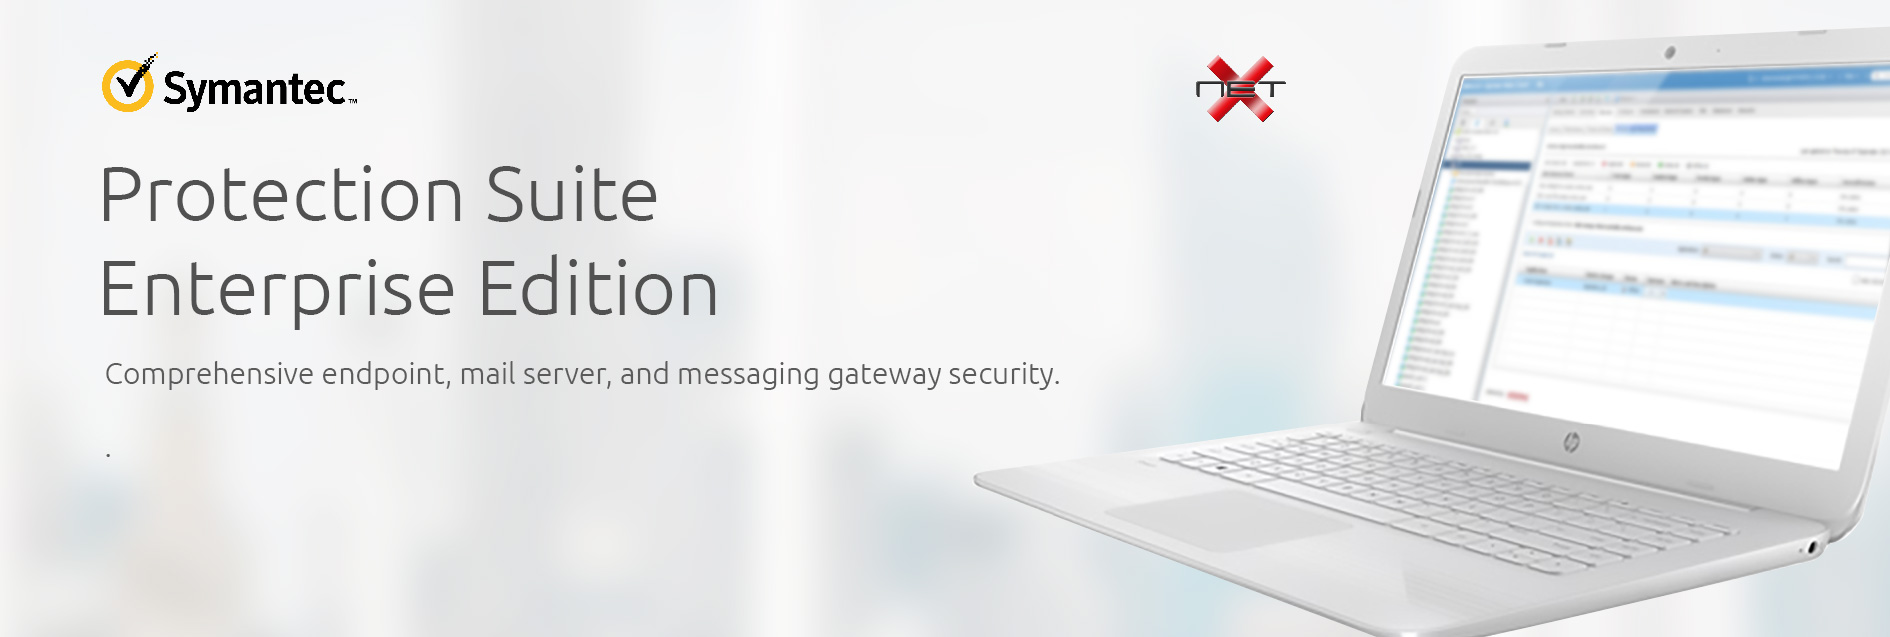 netx-symantecProtection-Suite-Enterprise-Edition-banner